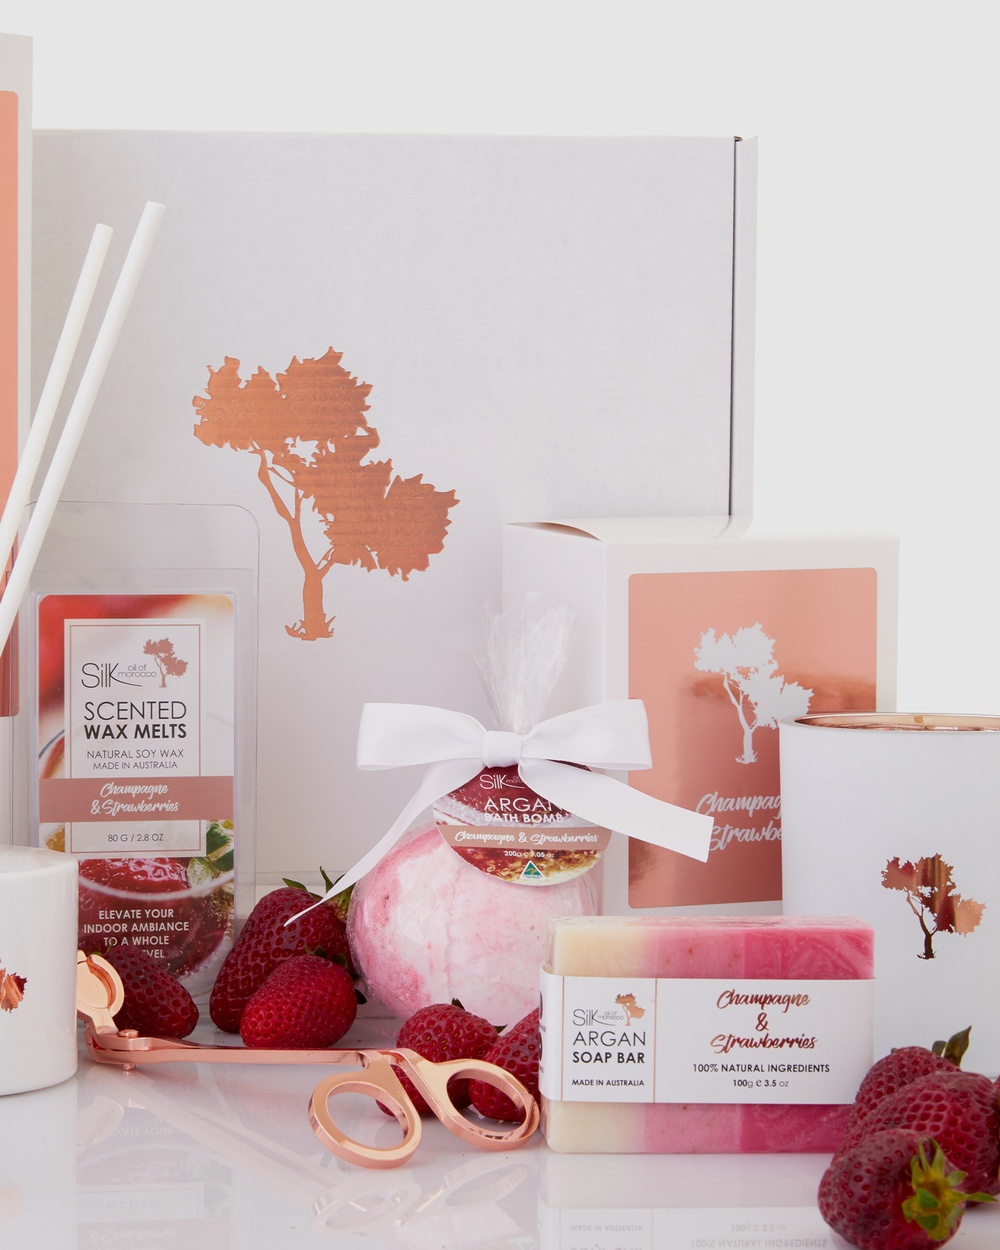 Silk Oil of Morocco Pure Luxe Day Spa Collection Hamper Champagne & Strawberries Home Champagne Strawberries